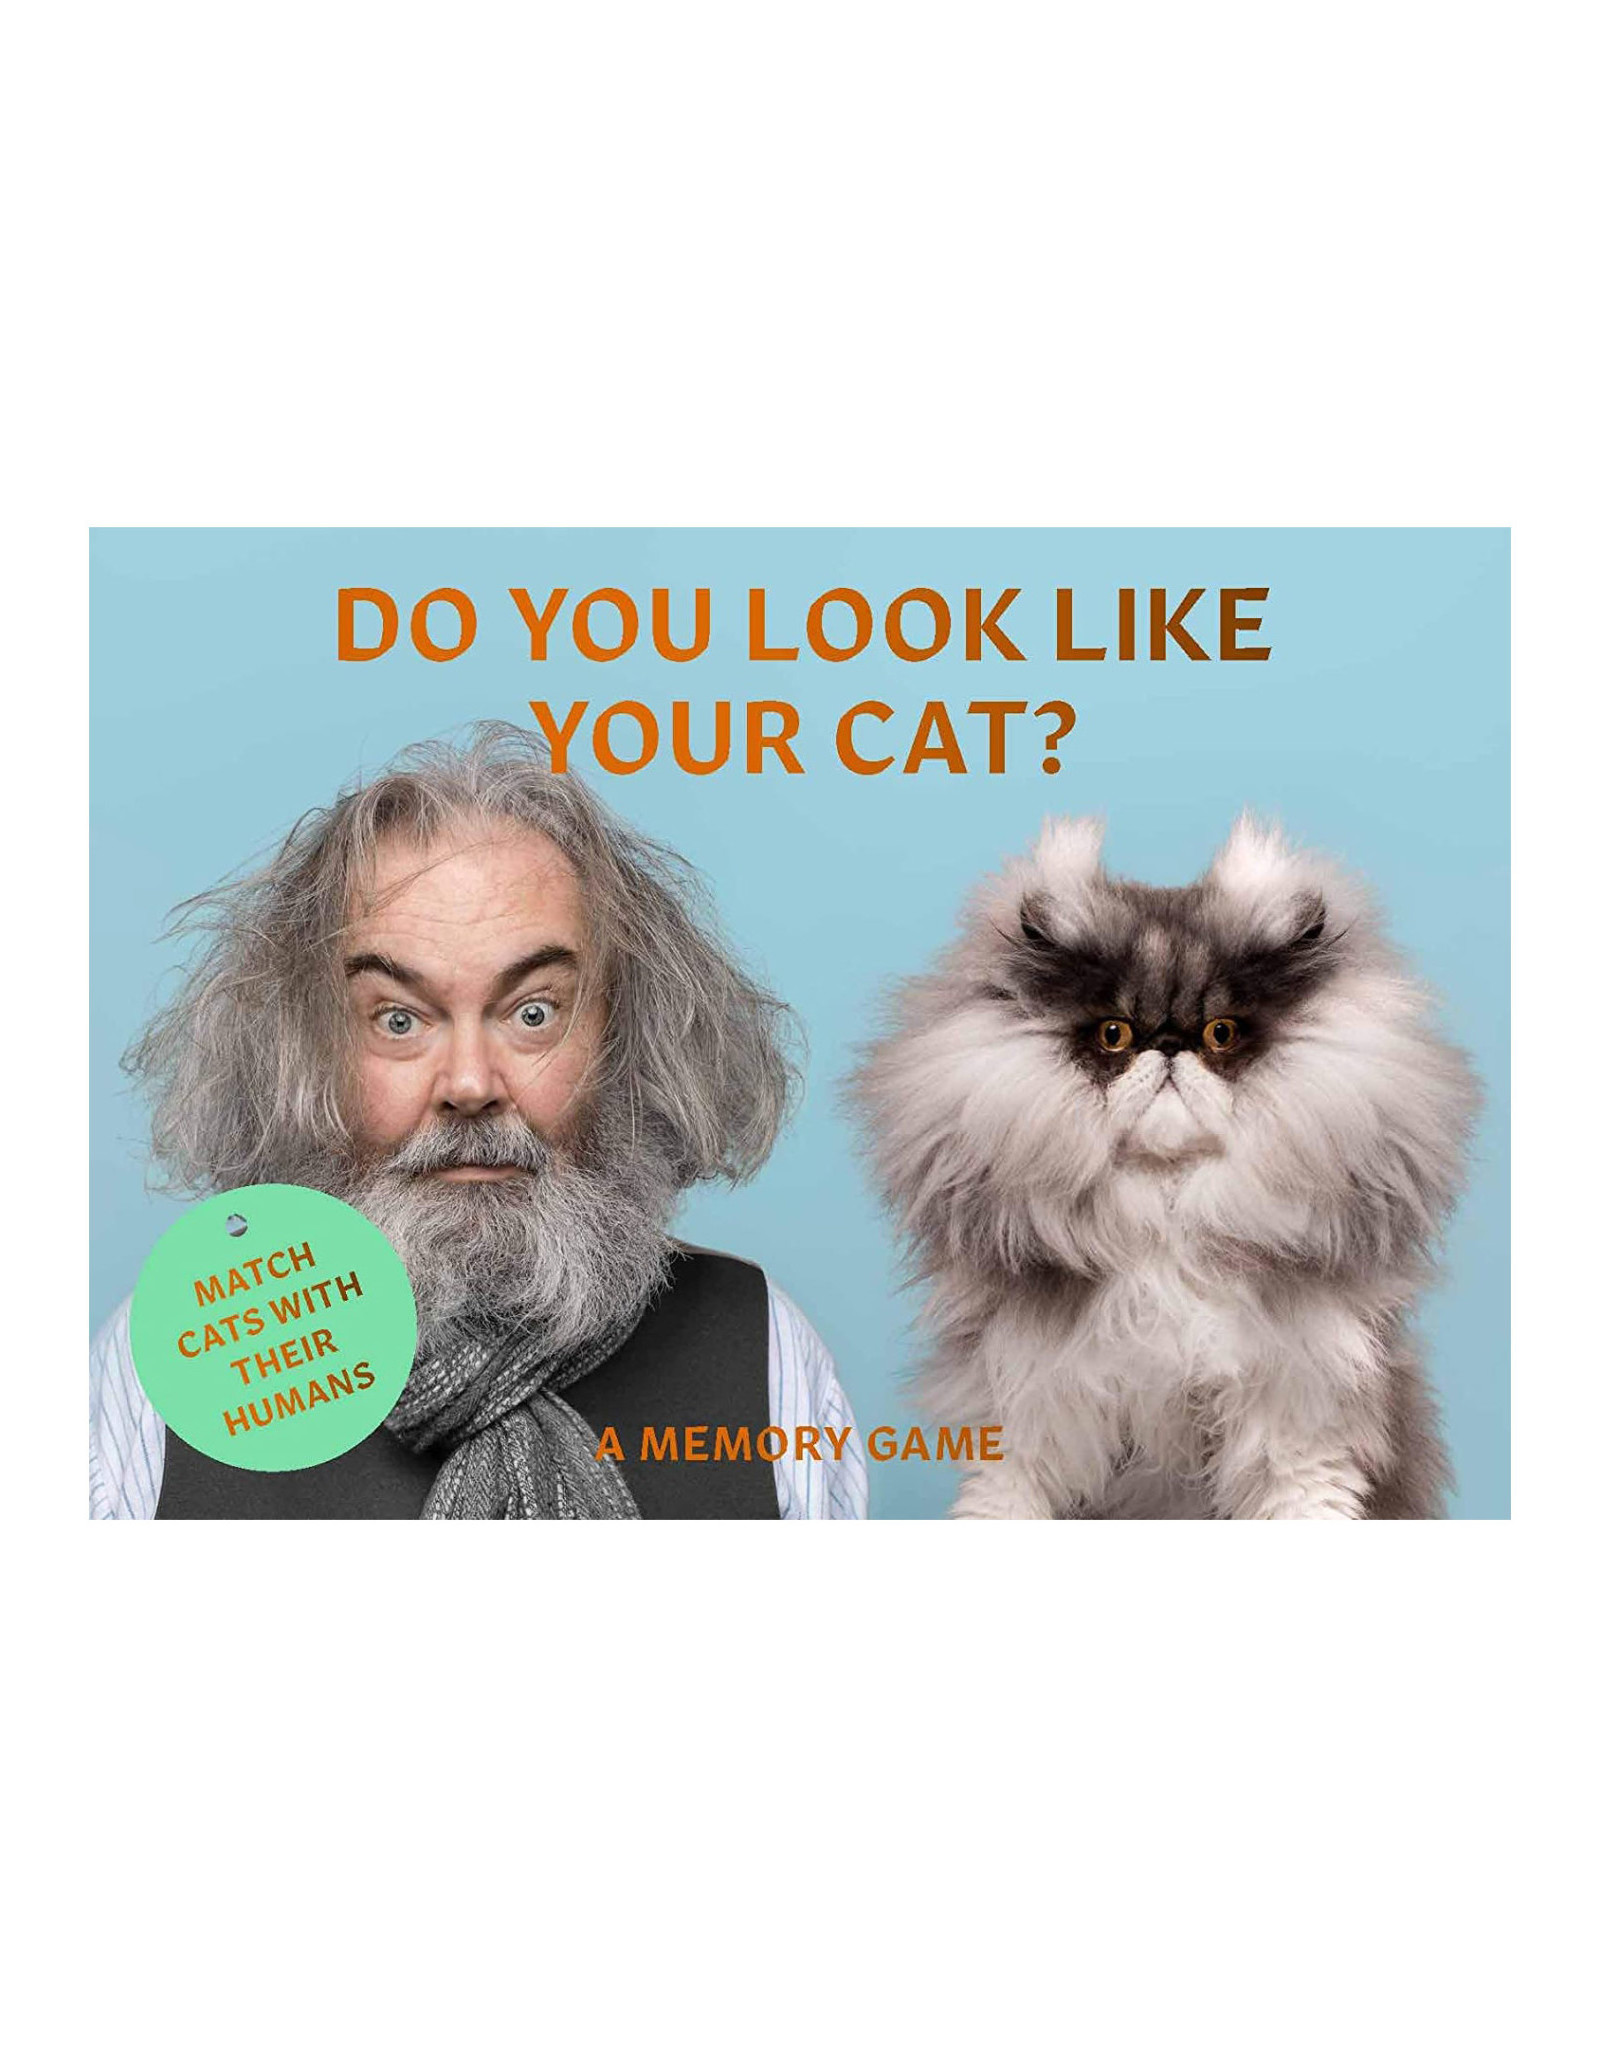 Do You Look Like Your Cat? Memory Game